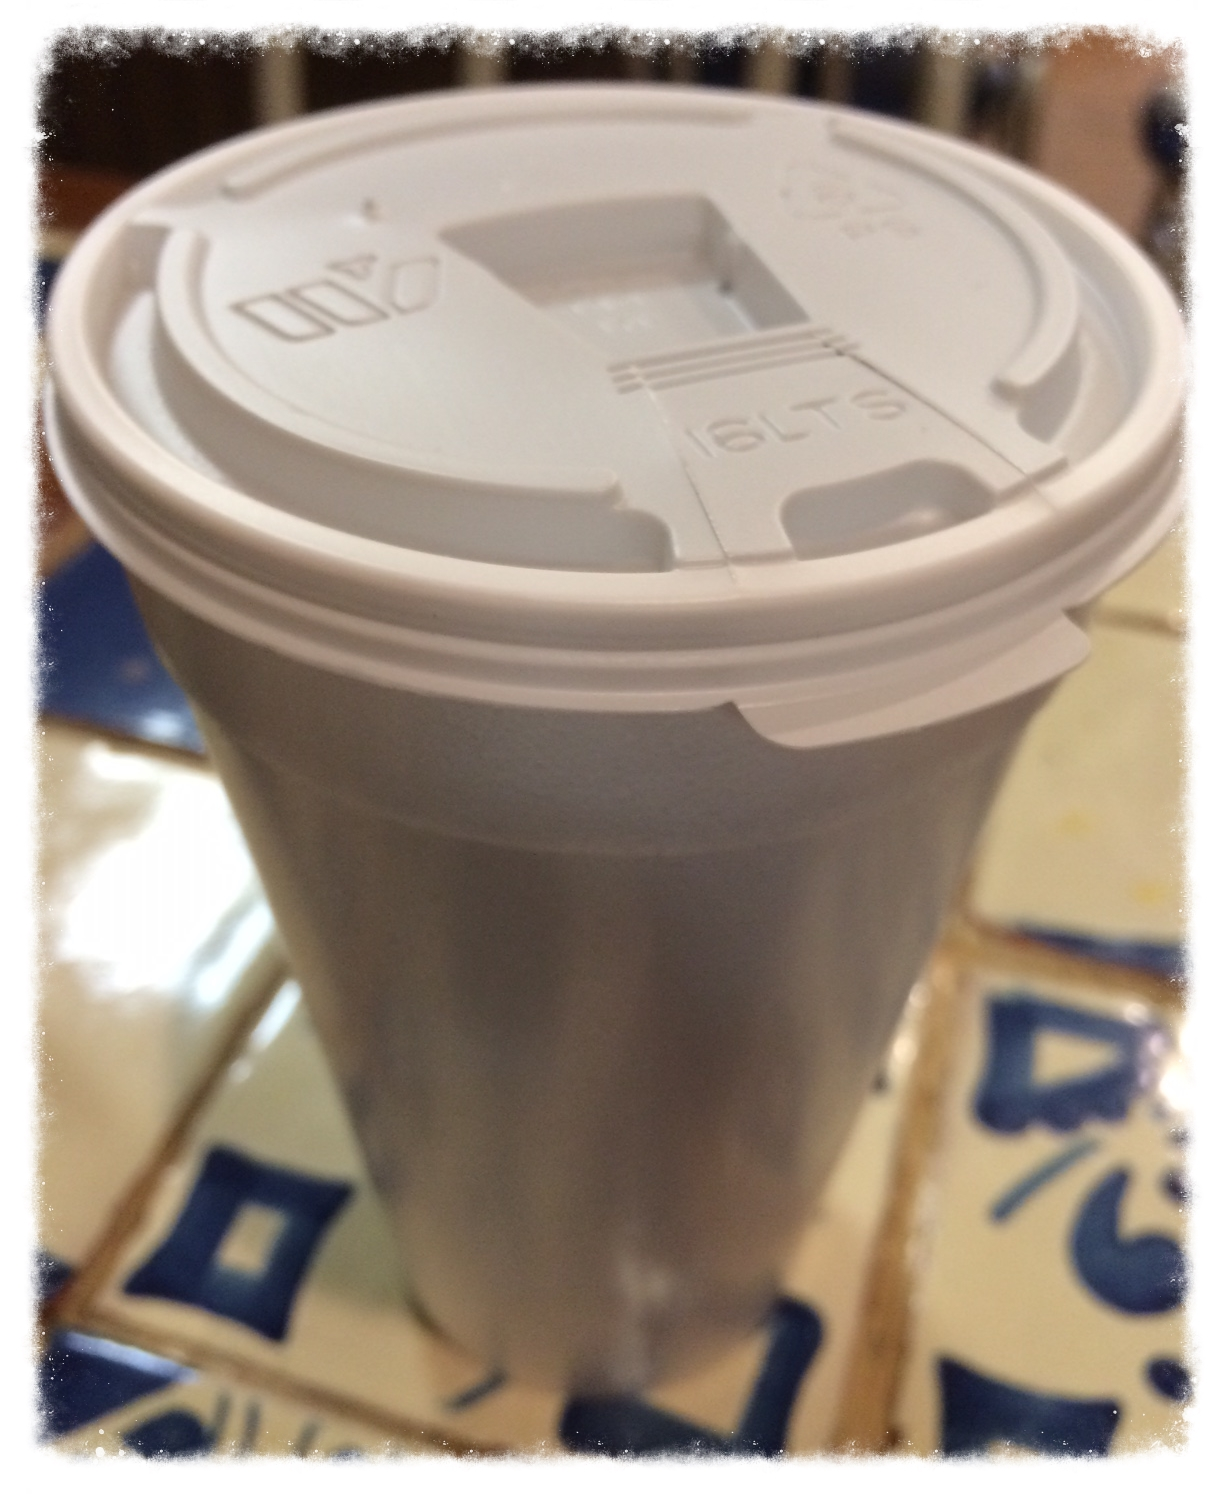 Coffee to go:Simple satisfaction